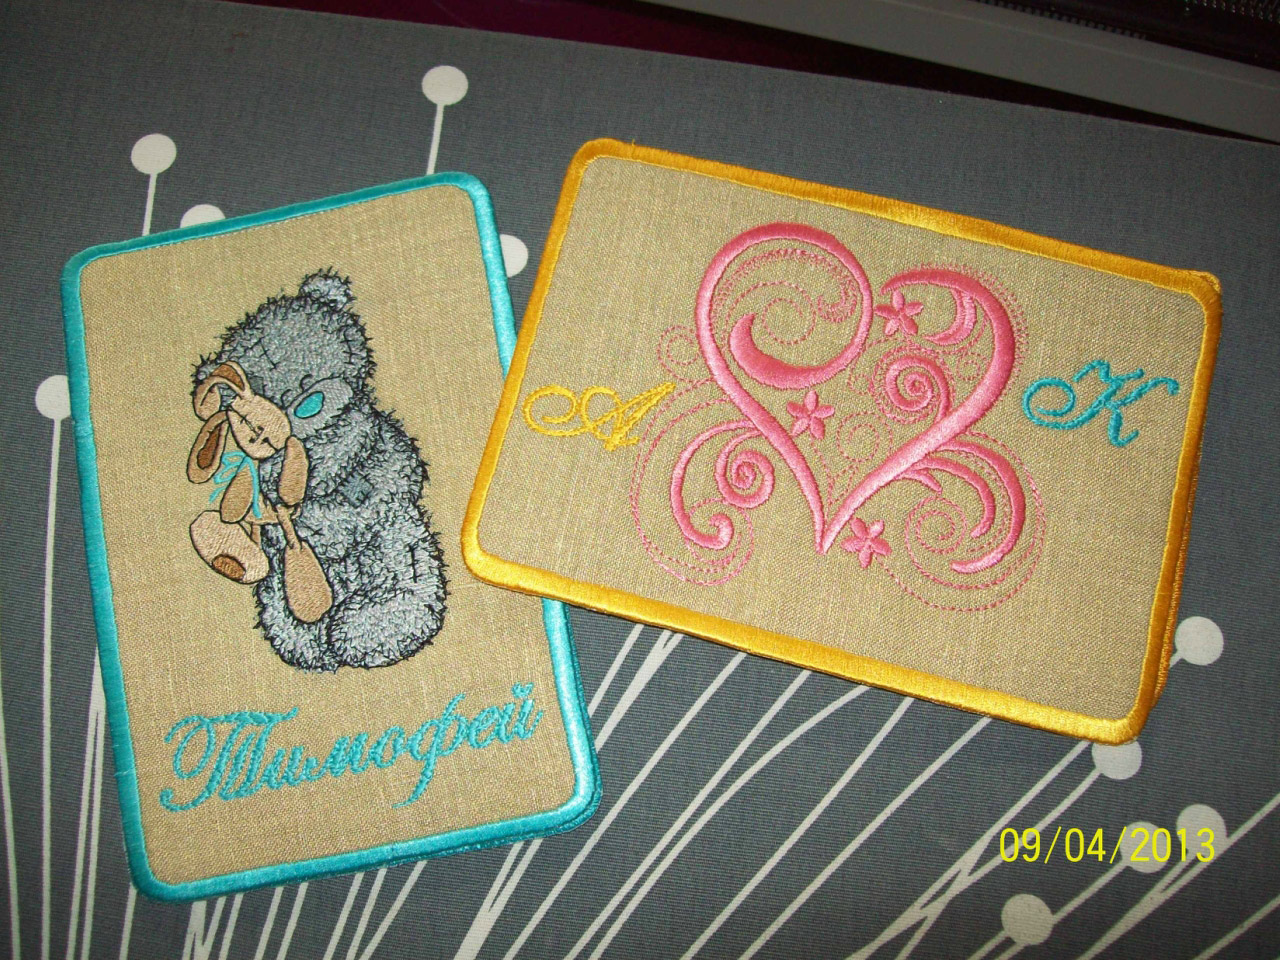 Teddy bear with toy design on embroidered newborn cover